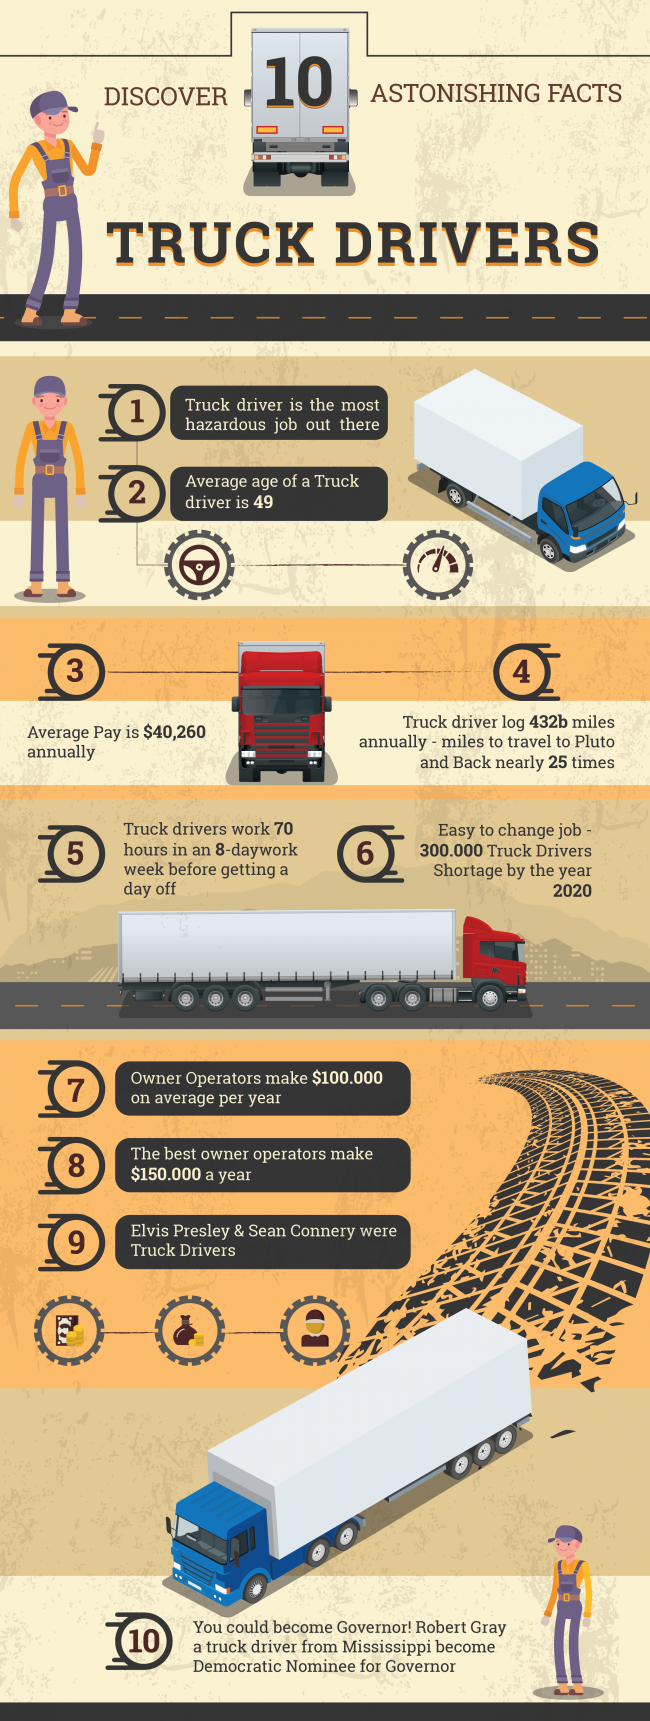 Discover 10 Astonishing Facts About Truck Drivers